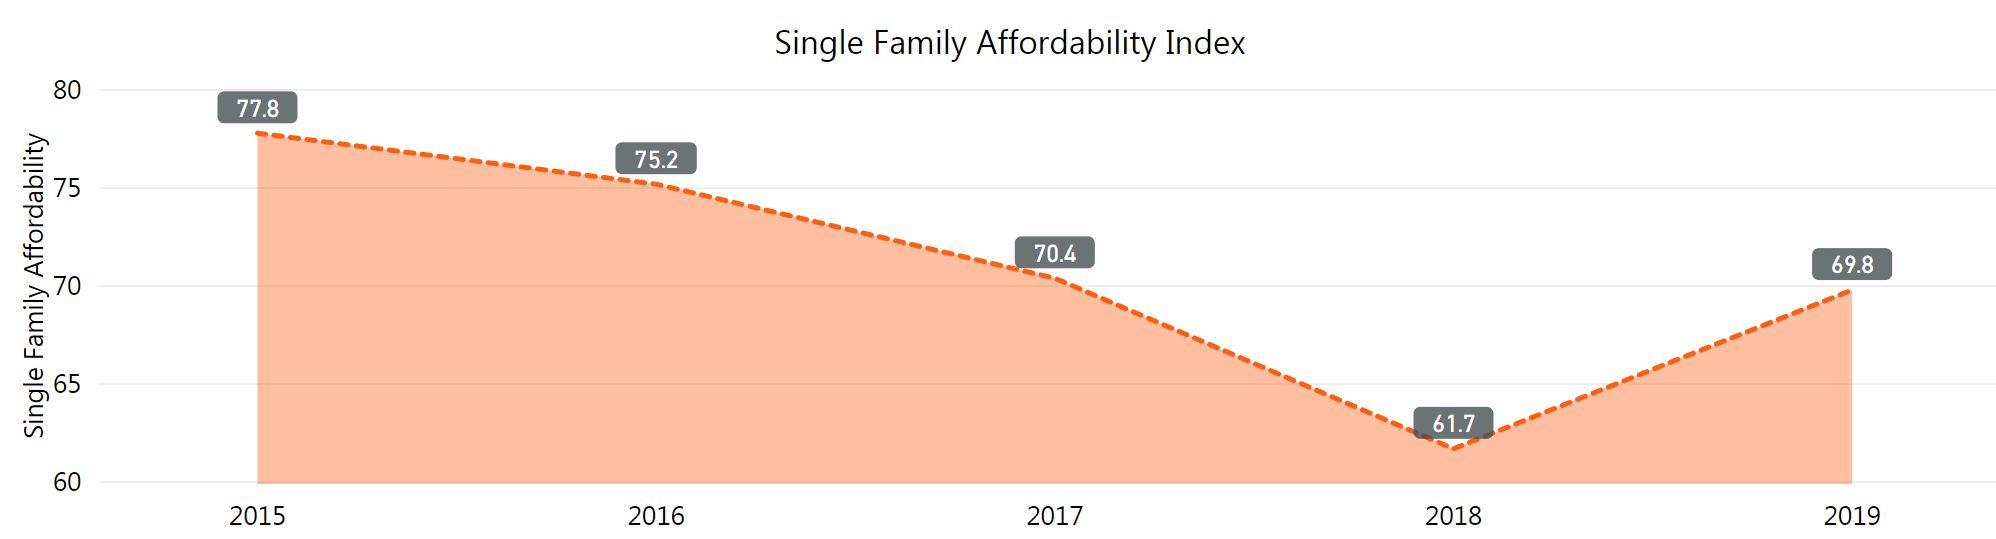 graph of single family affordability index. 77.8 in 2015. Low at 61.7 in 2018. 2019 was 69.8